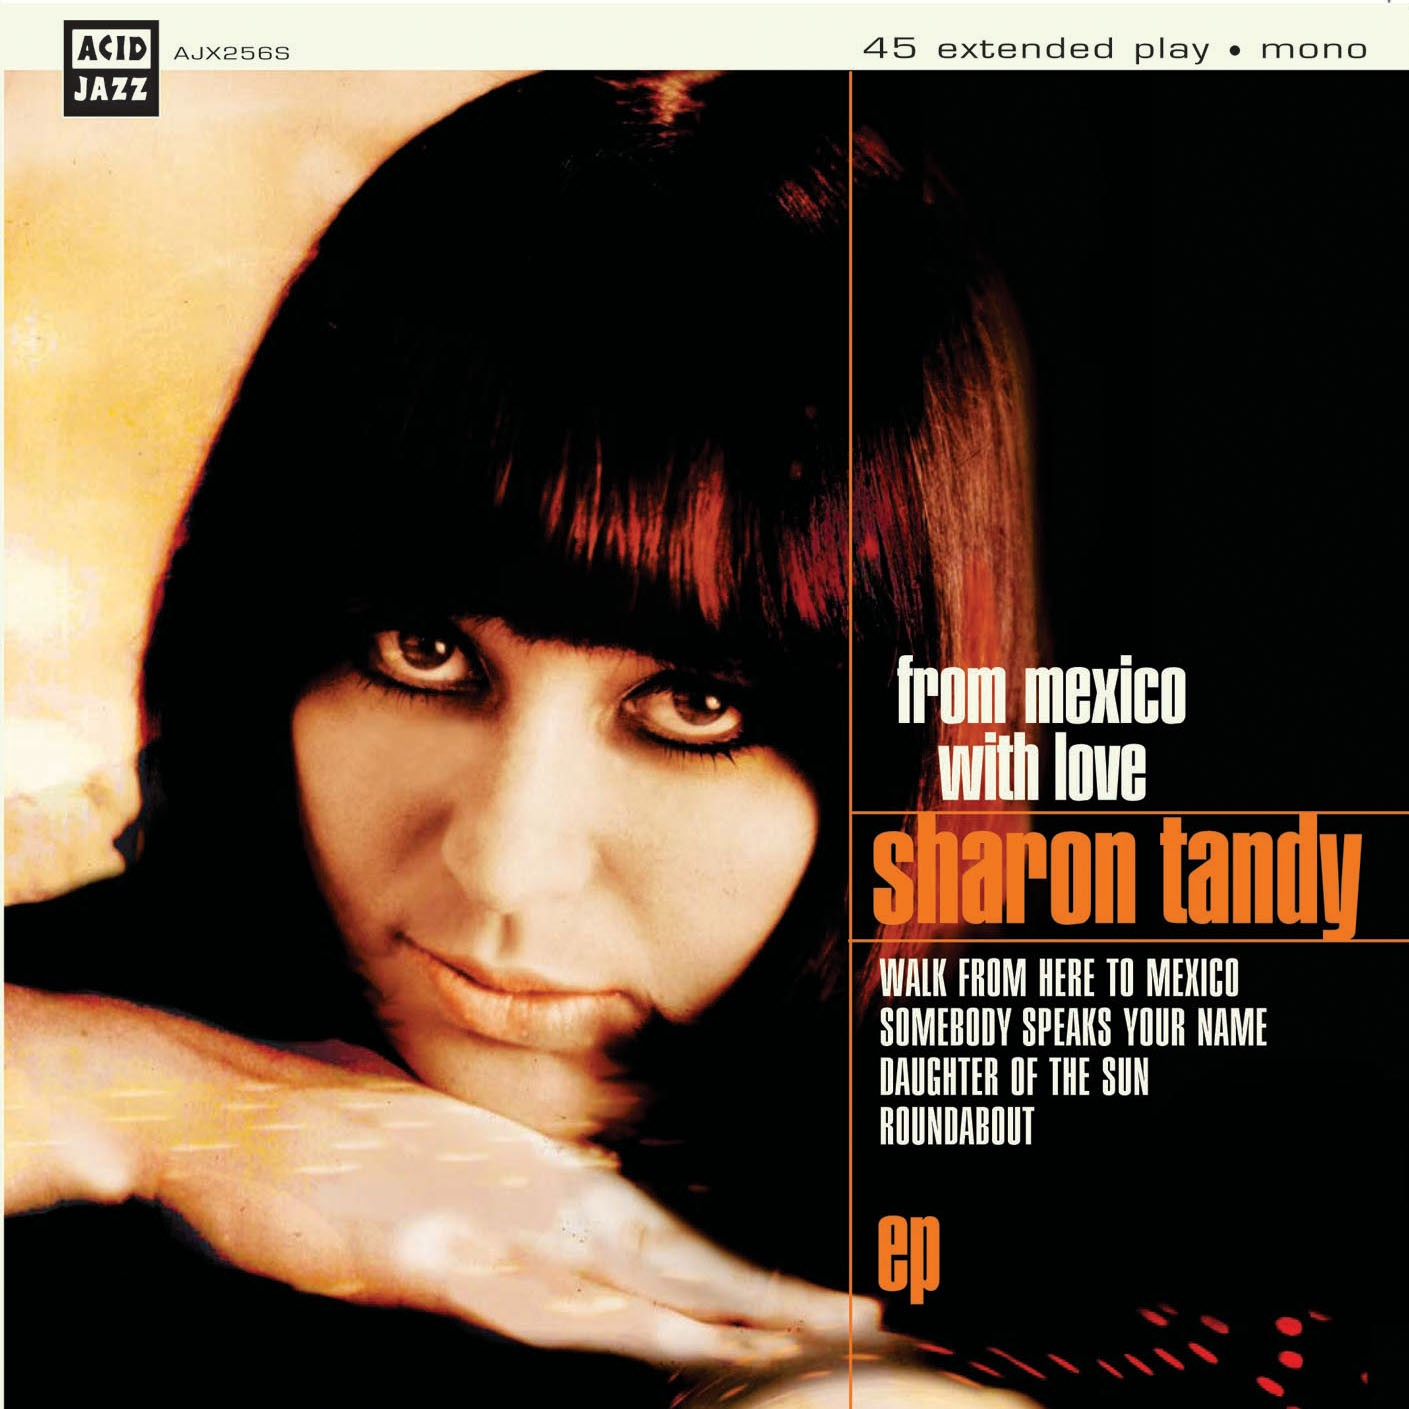 """Sharon Tandy/FROM MEXICO WITH LOVE EP 7"""""""